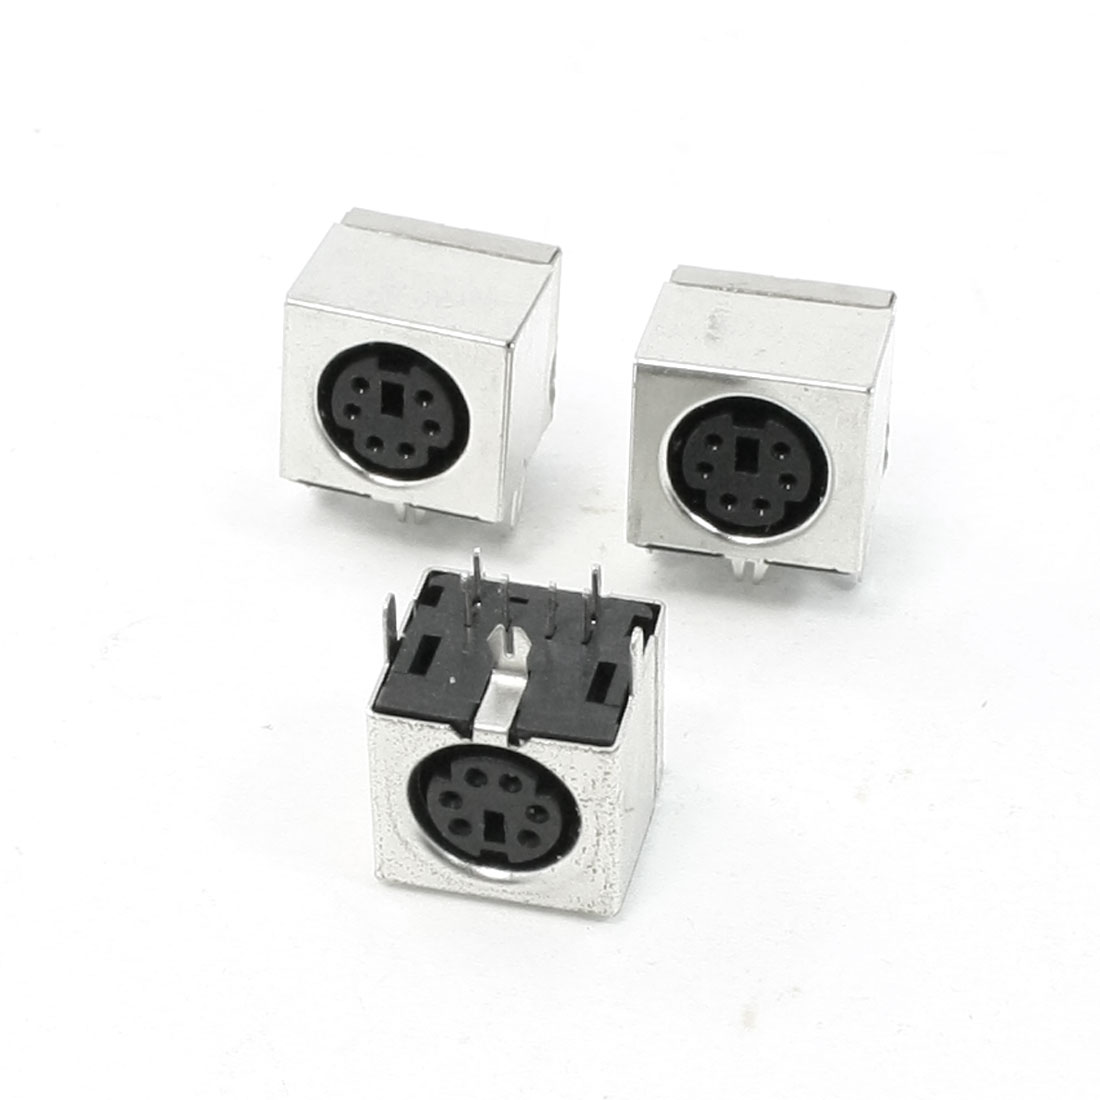 PCB Mounting 6 Mini Pin Female S-video Adapter Sockets Connectors 3 Pcs